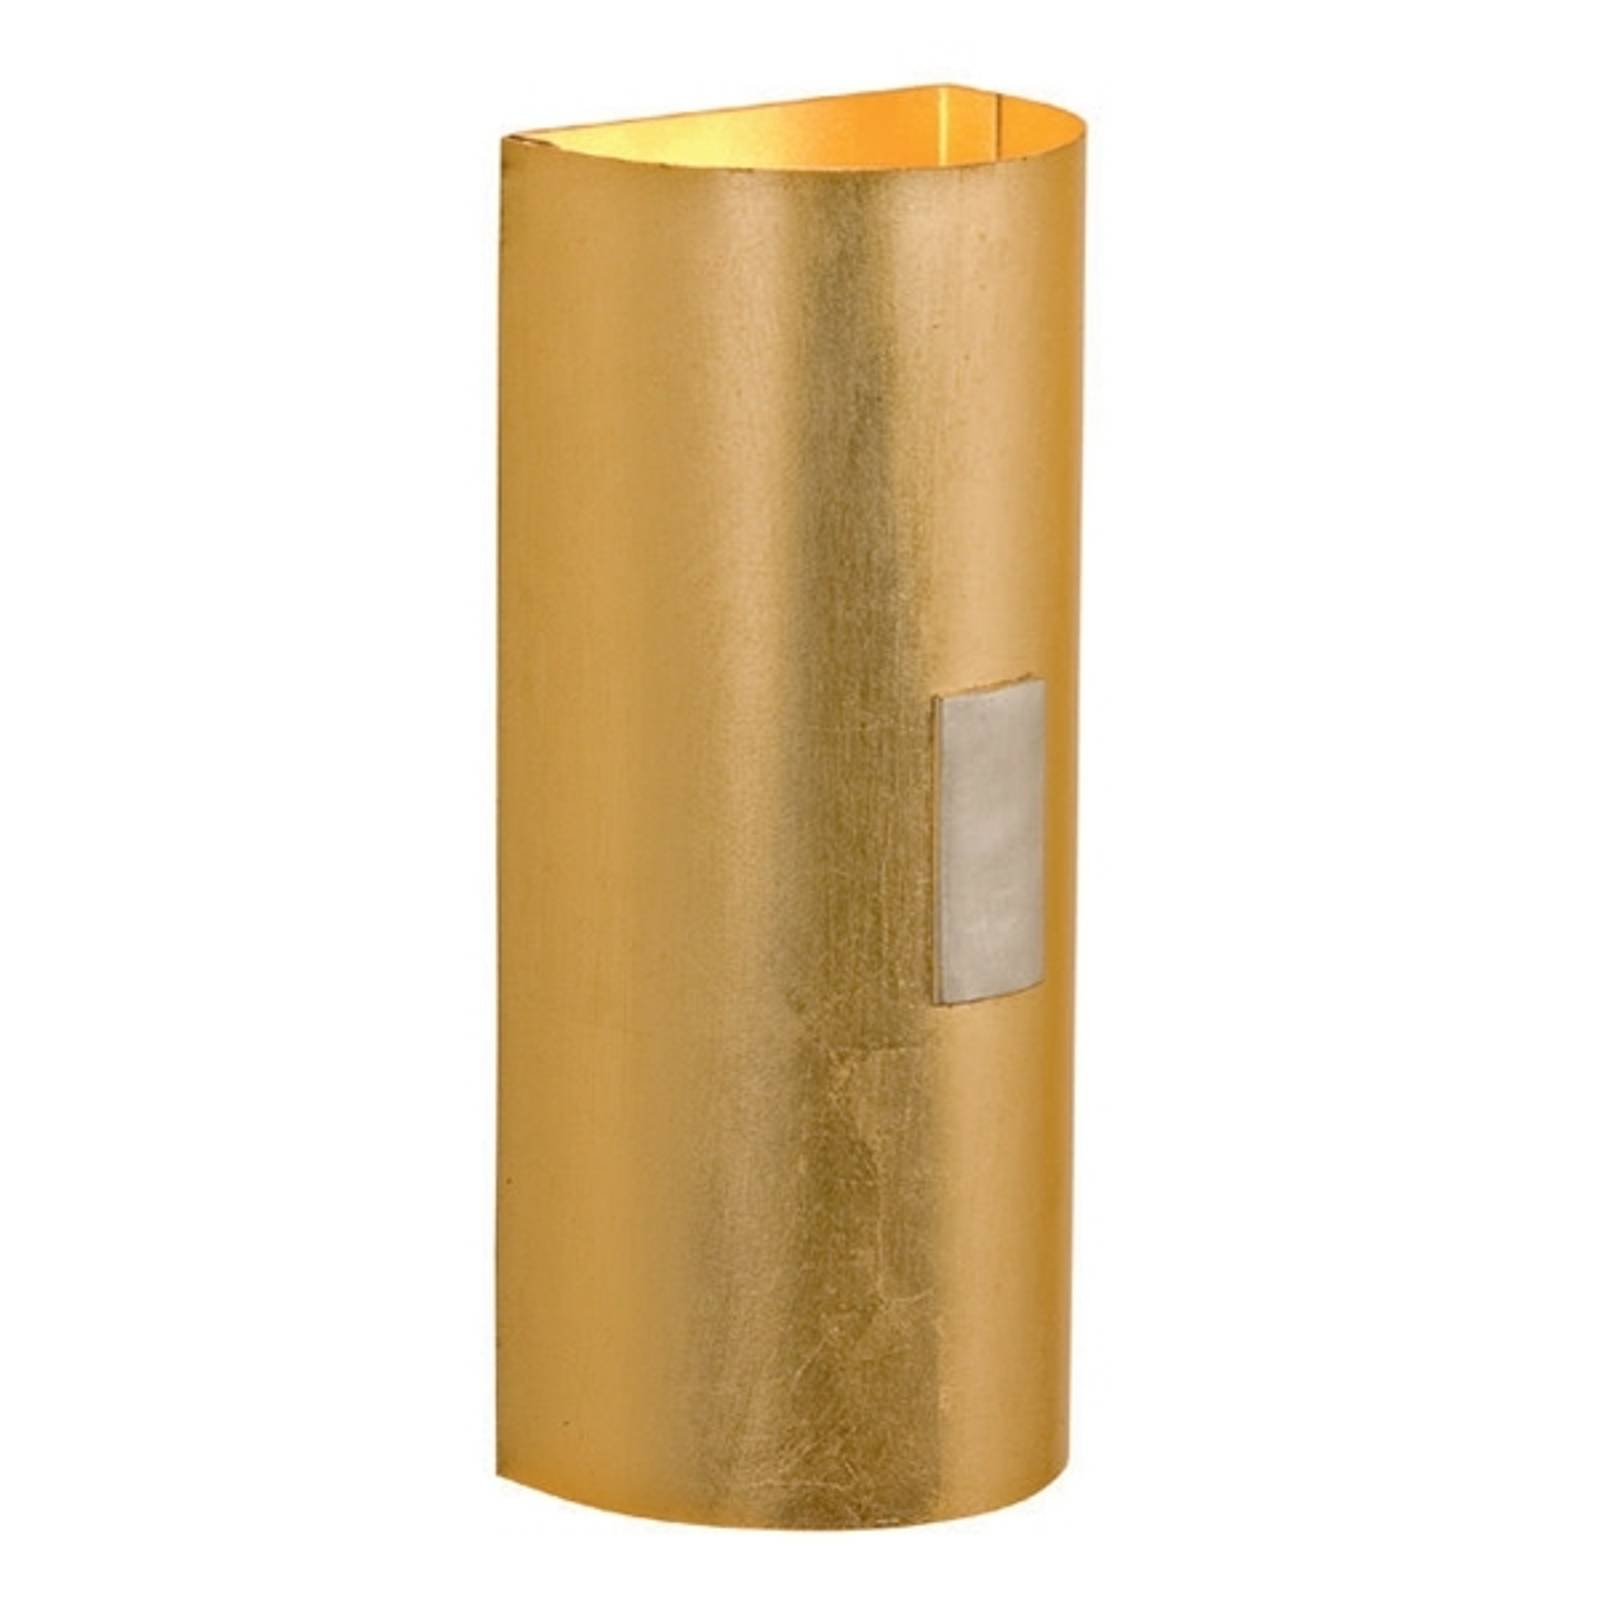 SOLO elegantly decorated wall light from Menzel